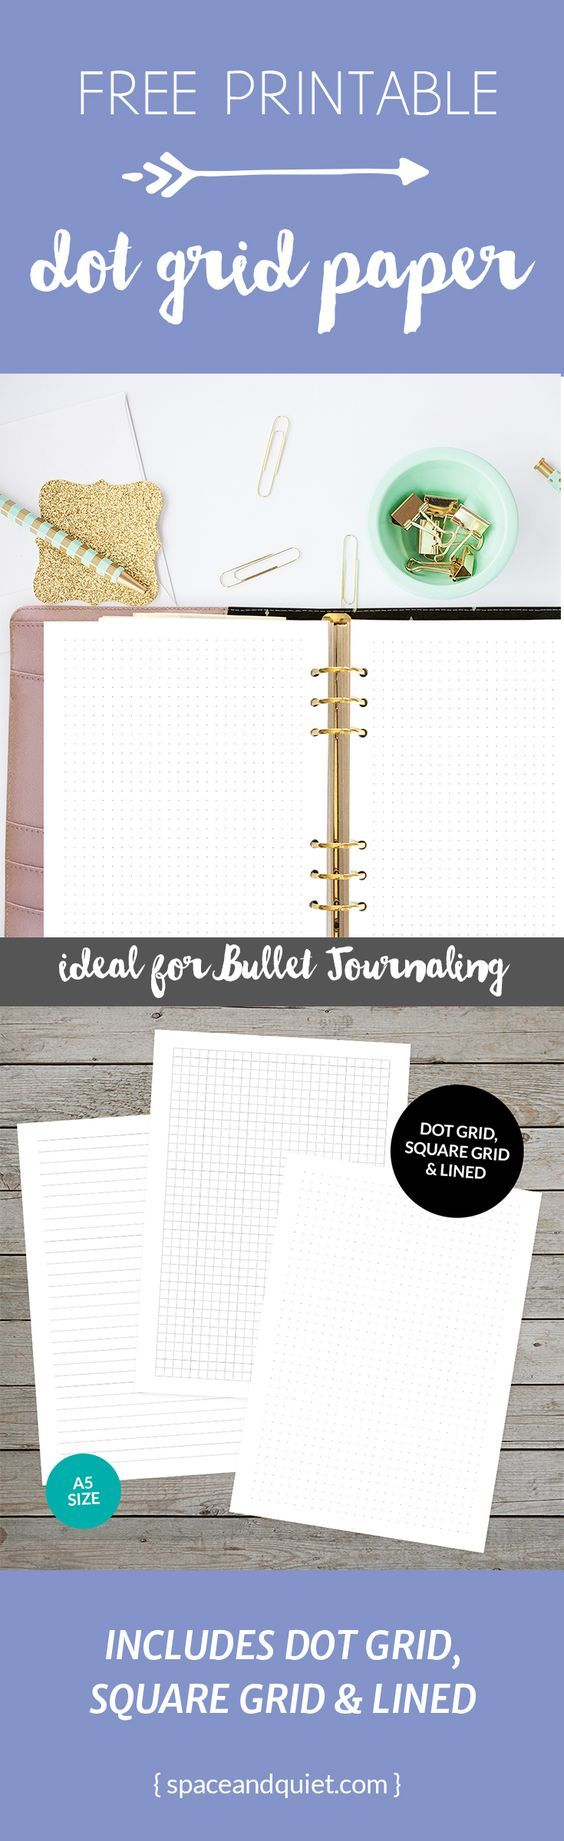 Free Printable Dot Grid, Square Grid and Lined Paper for Bullet Journaling